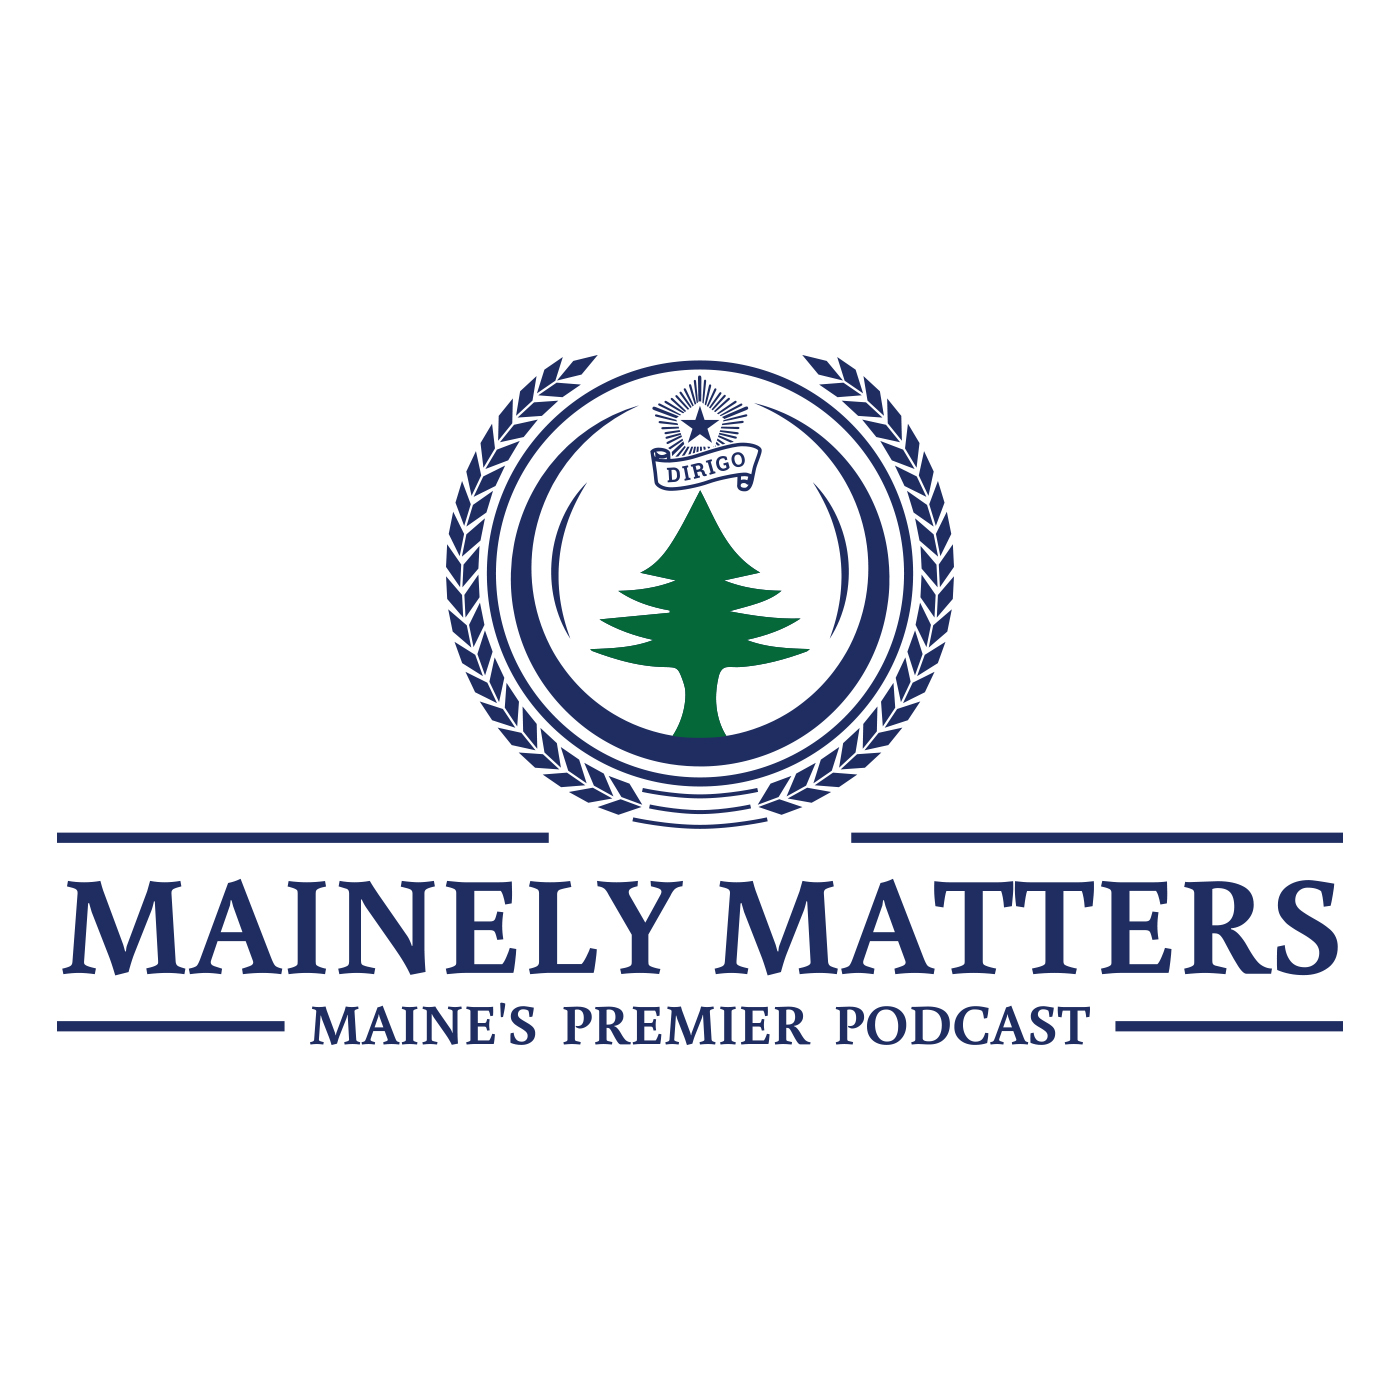 Mainely Matters